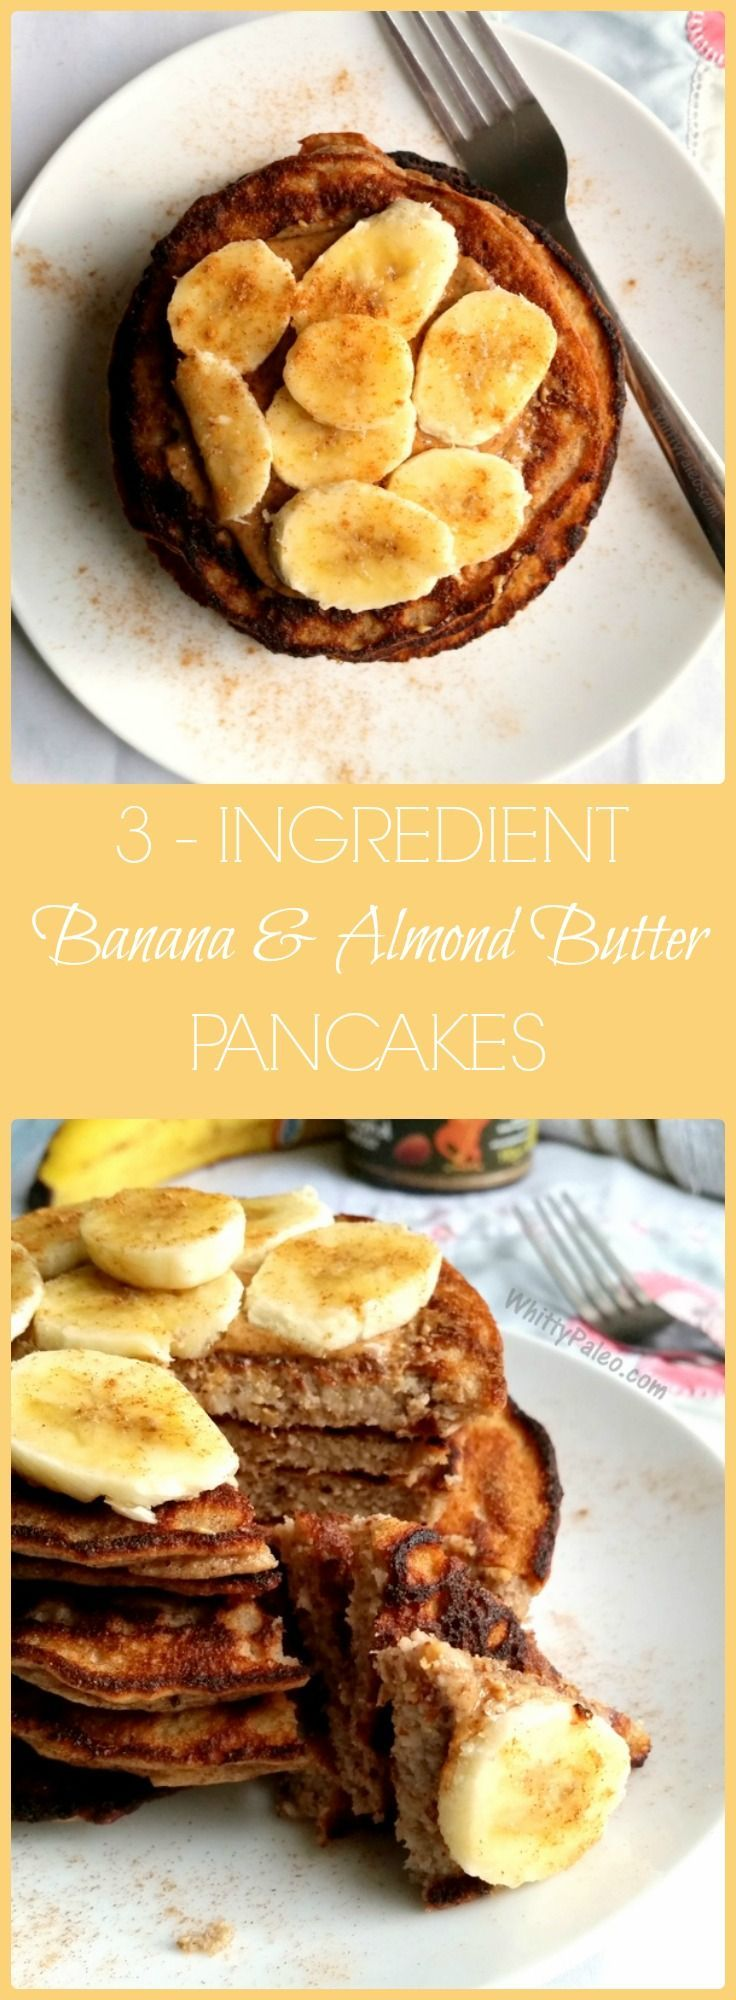 These Paleo, Gluten Free healthy Almond Butter Banana Pancakes only take THREE INGREDIENTS to make!